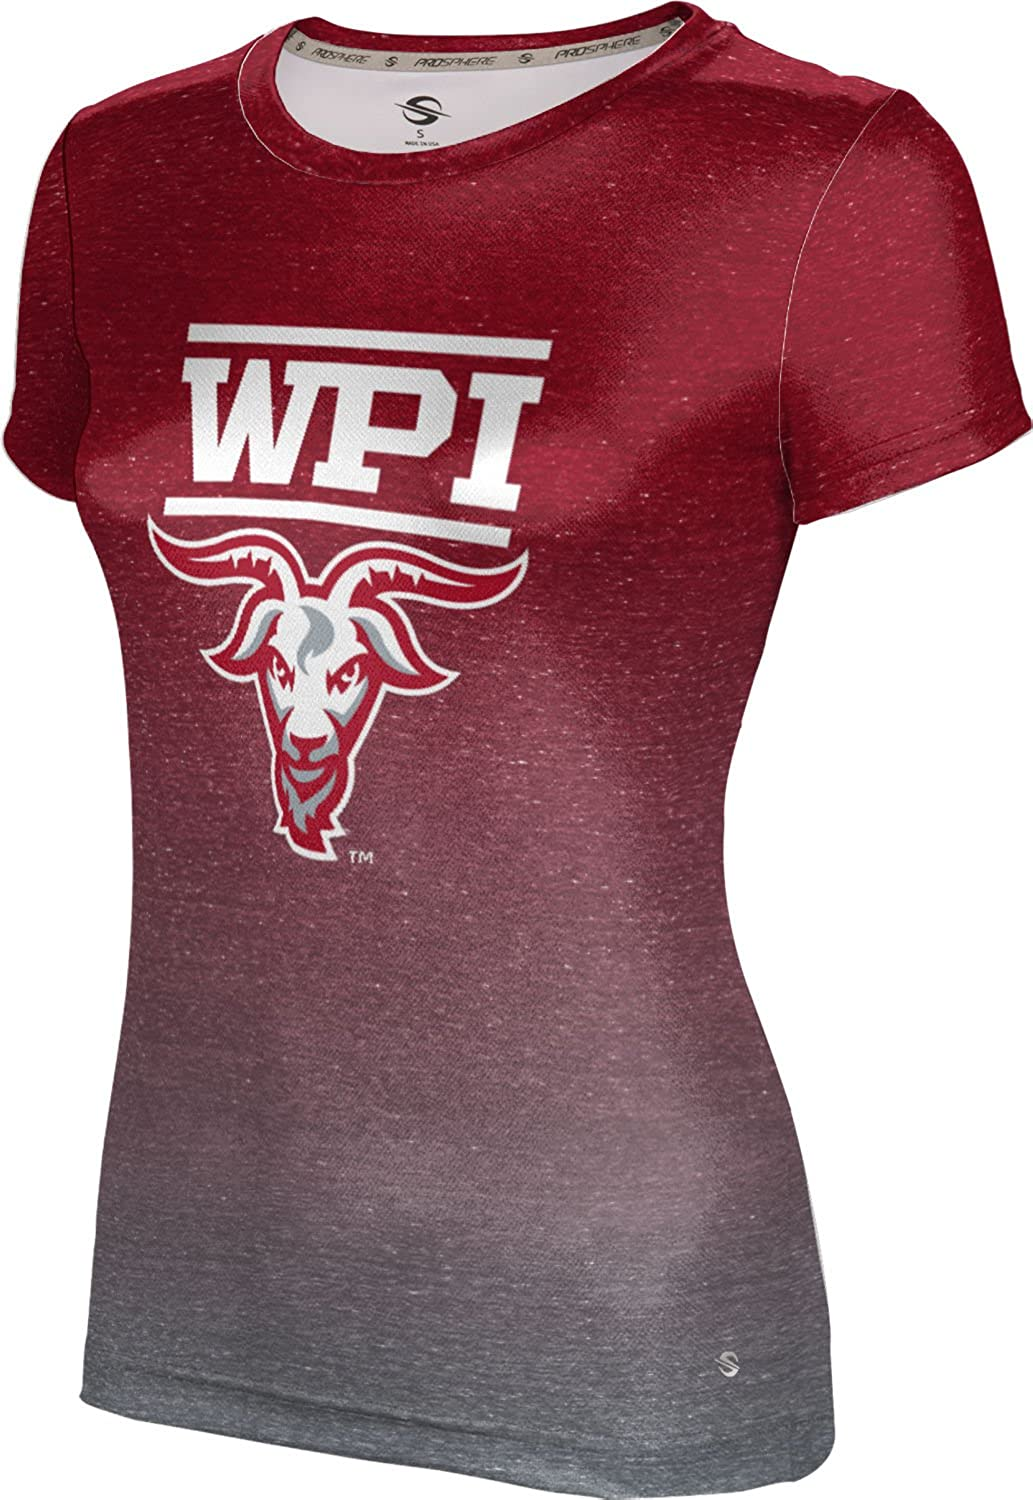 ProSphere Worcester Polytechnic Institute University Girls' Performance T-Shirt (Ombre)